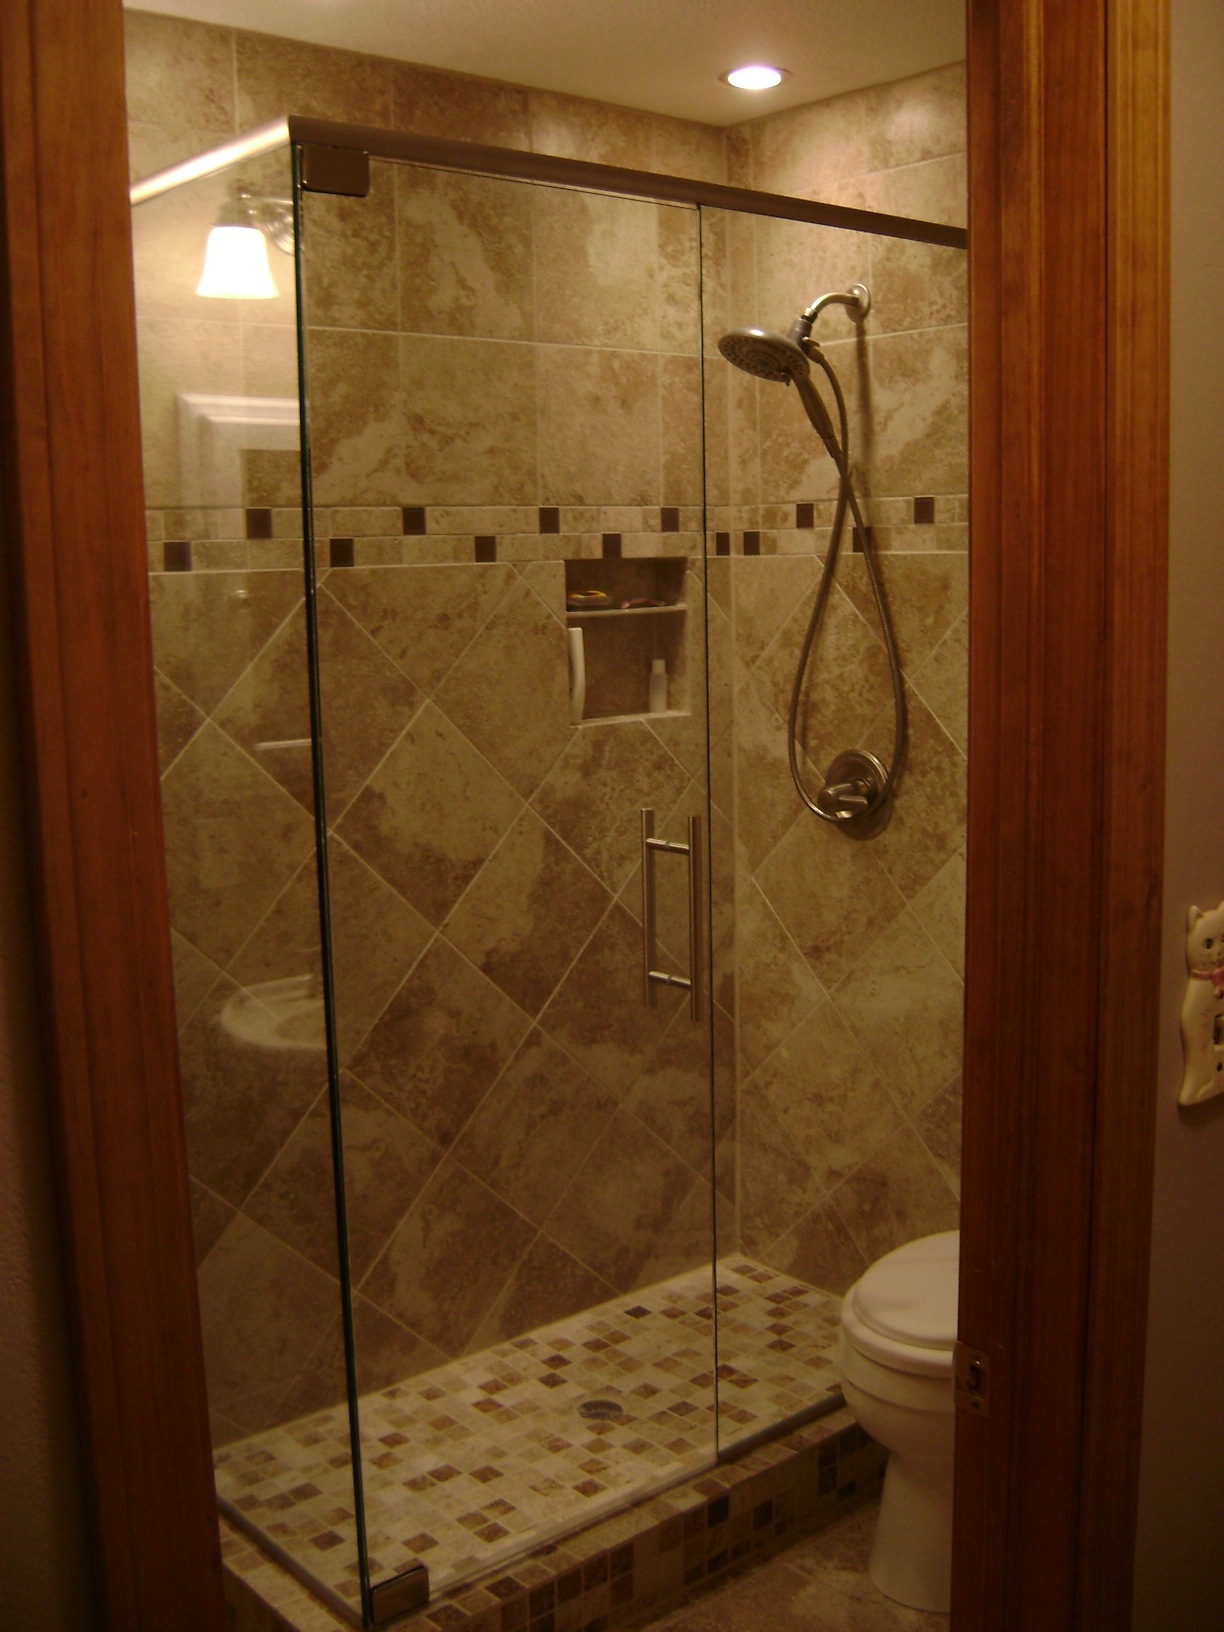 Remodeling examples for Bathroom remodel examples